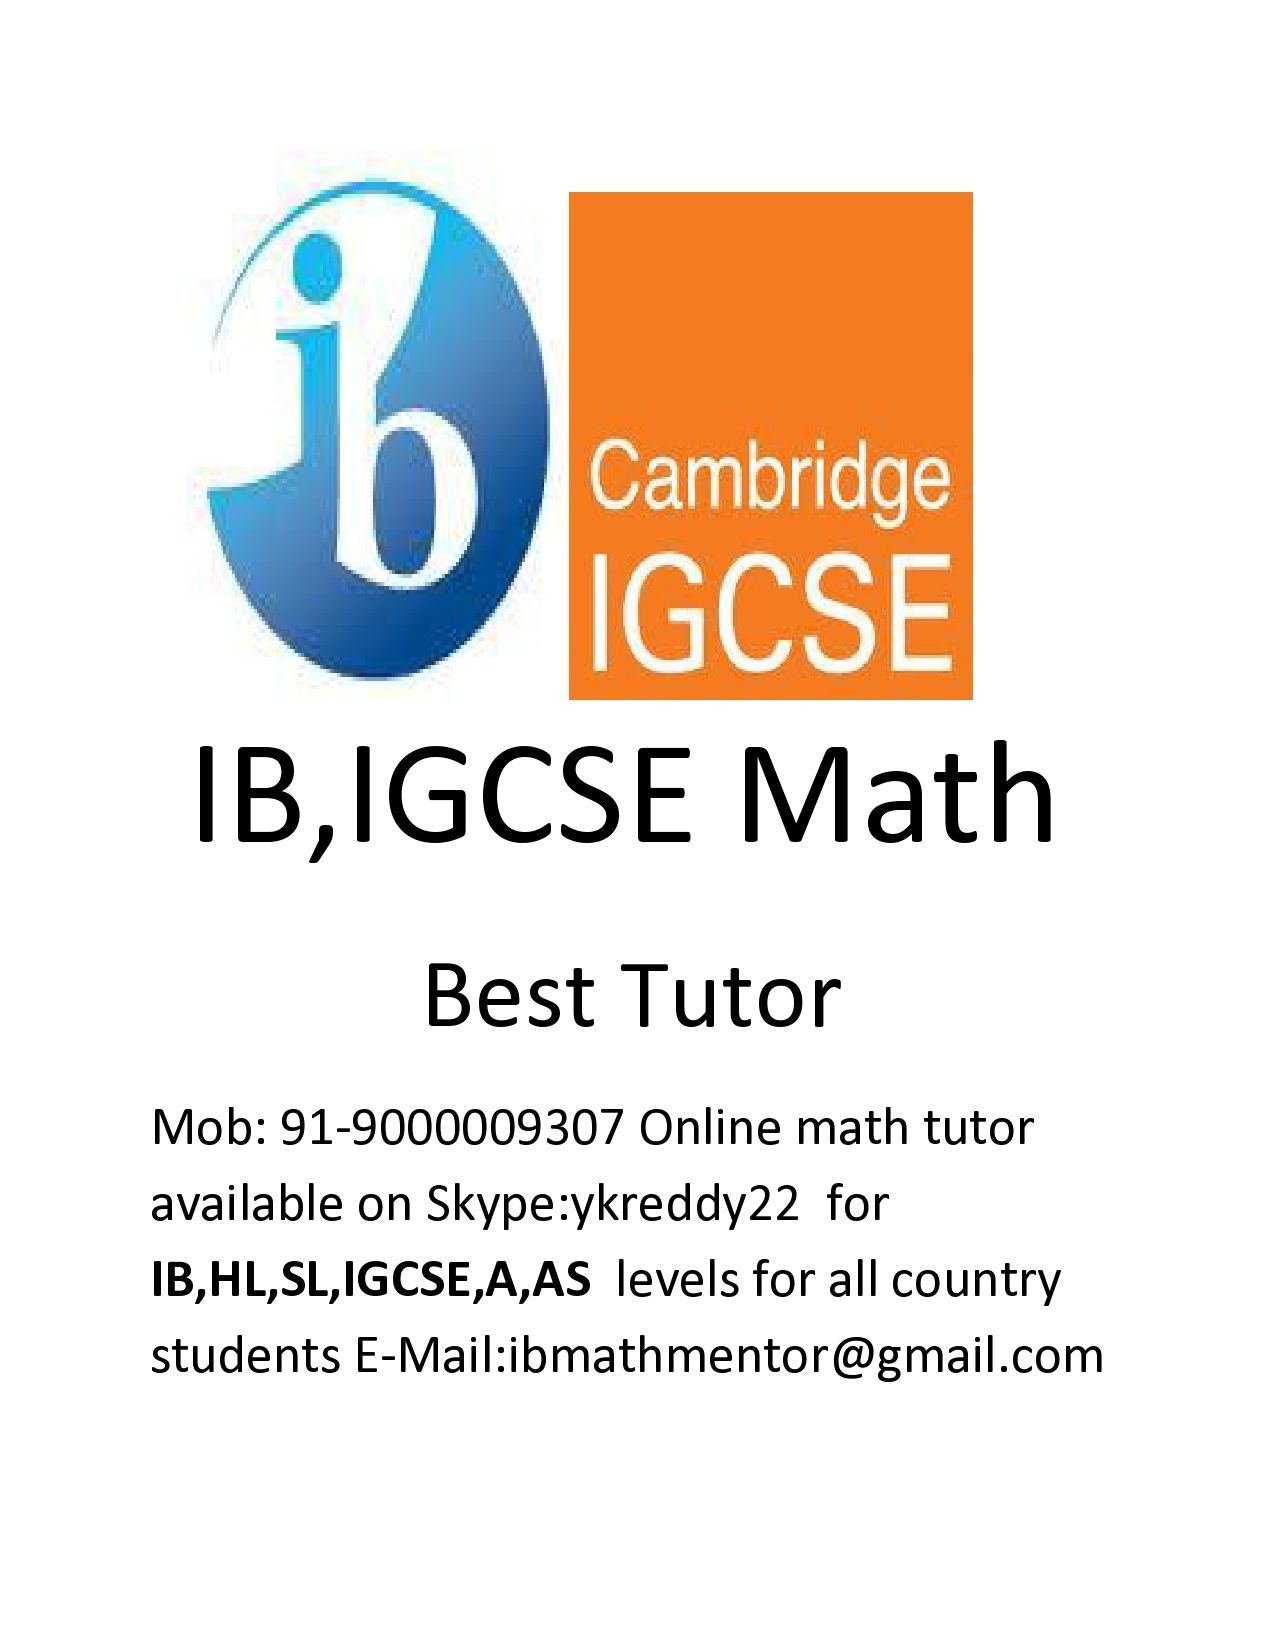 Do you want Math Online Tutor for IGCSE( A,AS and O levels) Edexcel ...